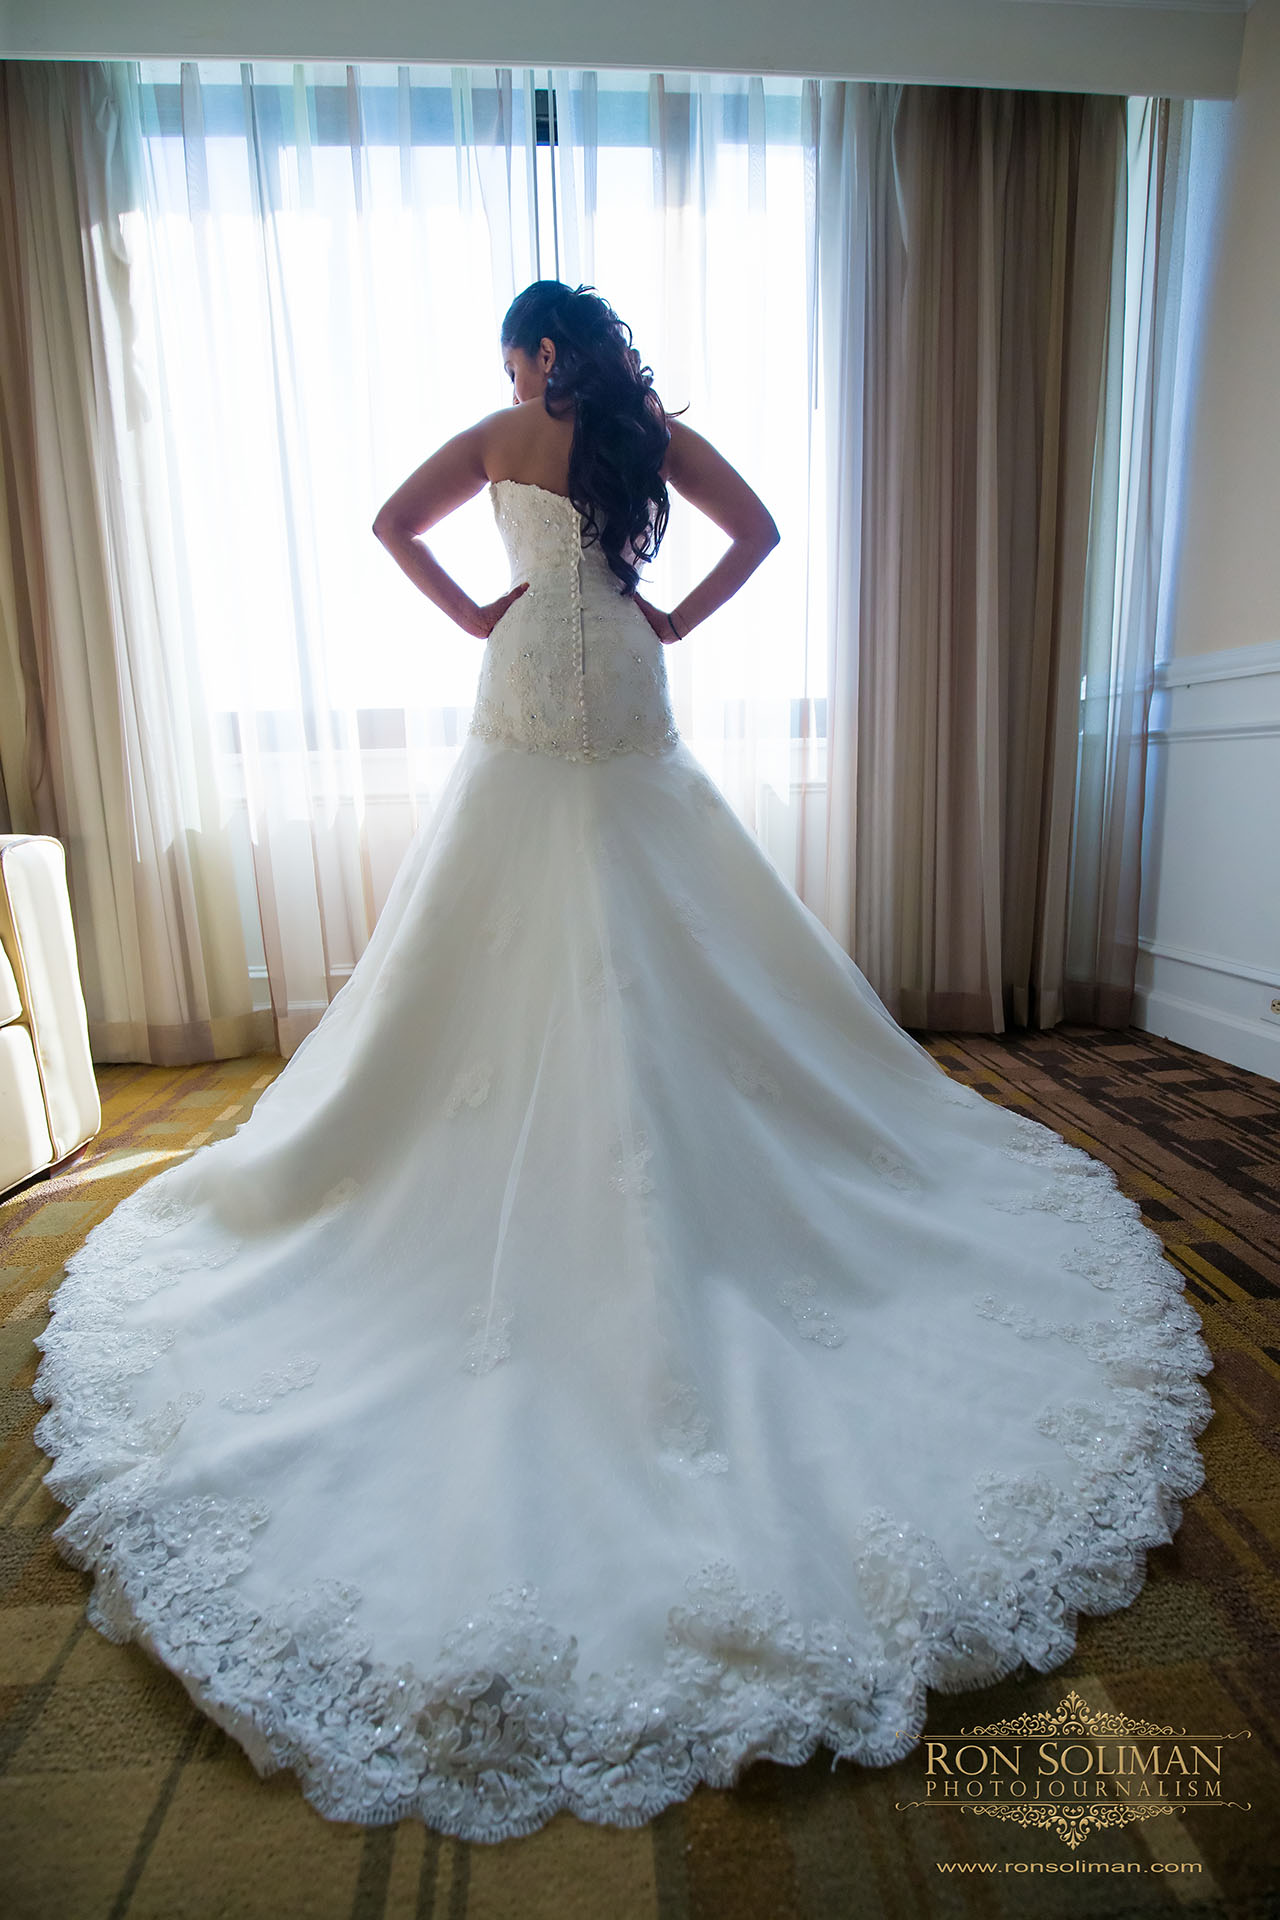 wedding photos at Christ our light catholic church in Cherry Hill, new jersey